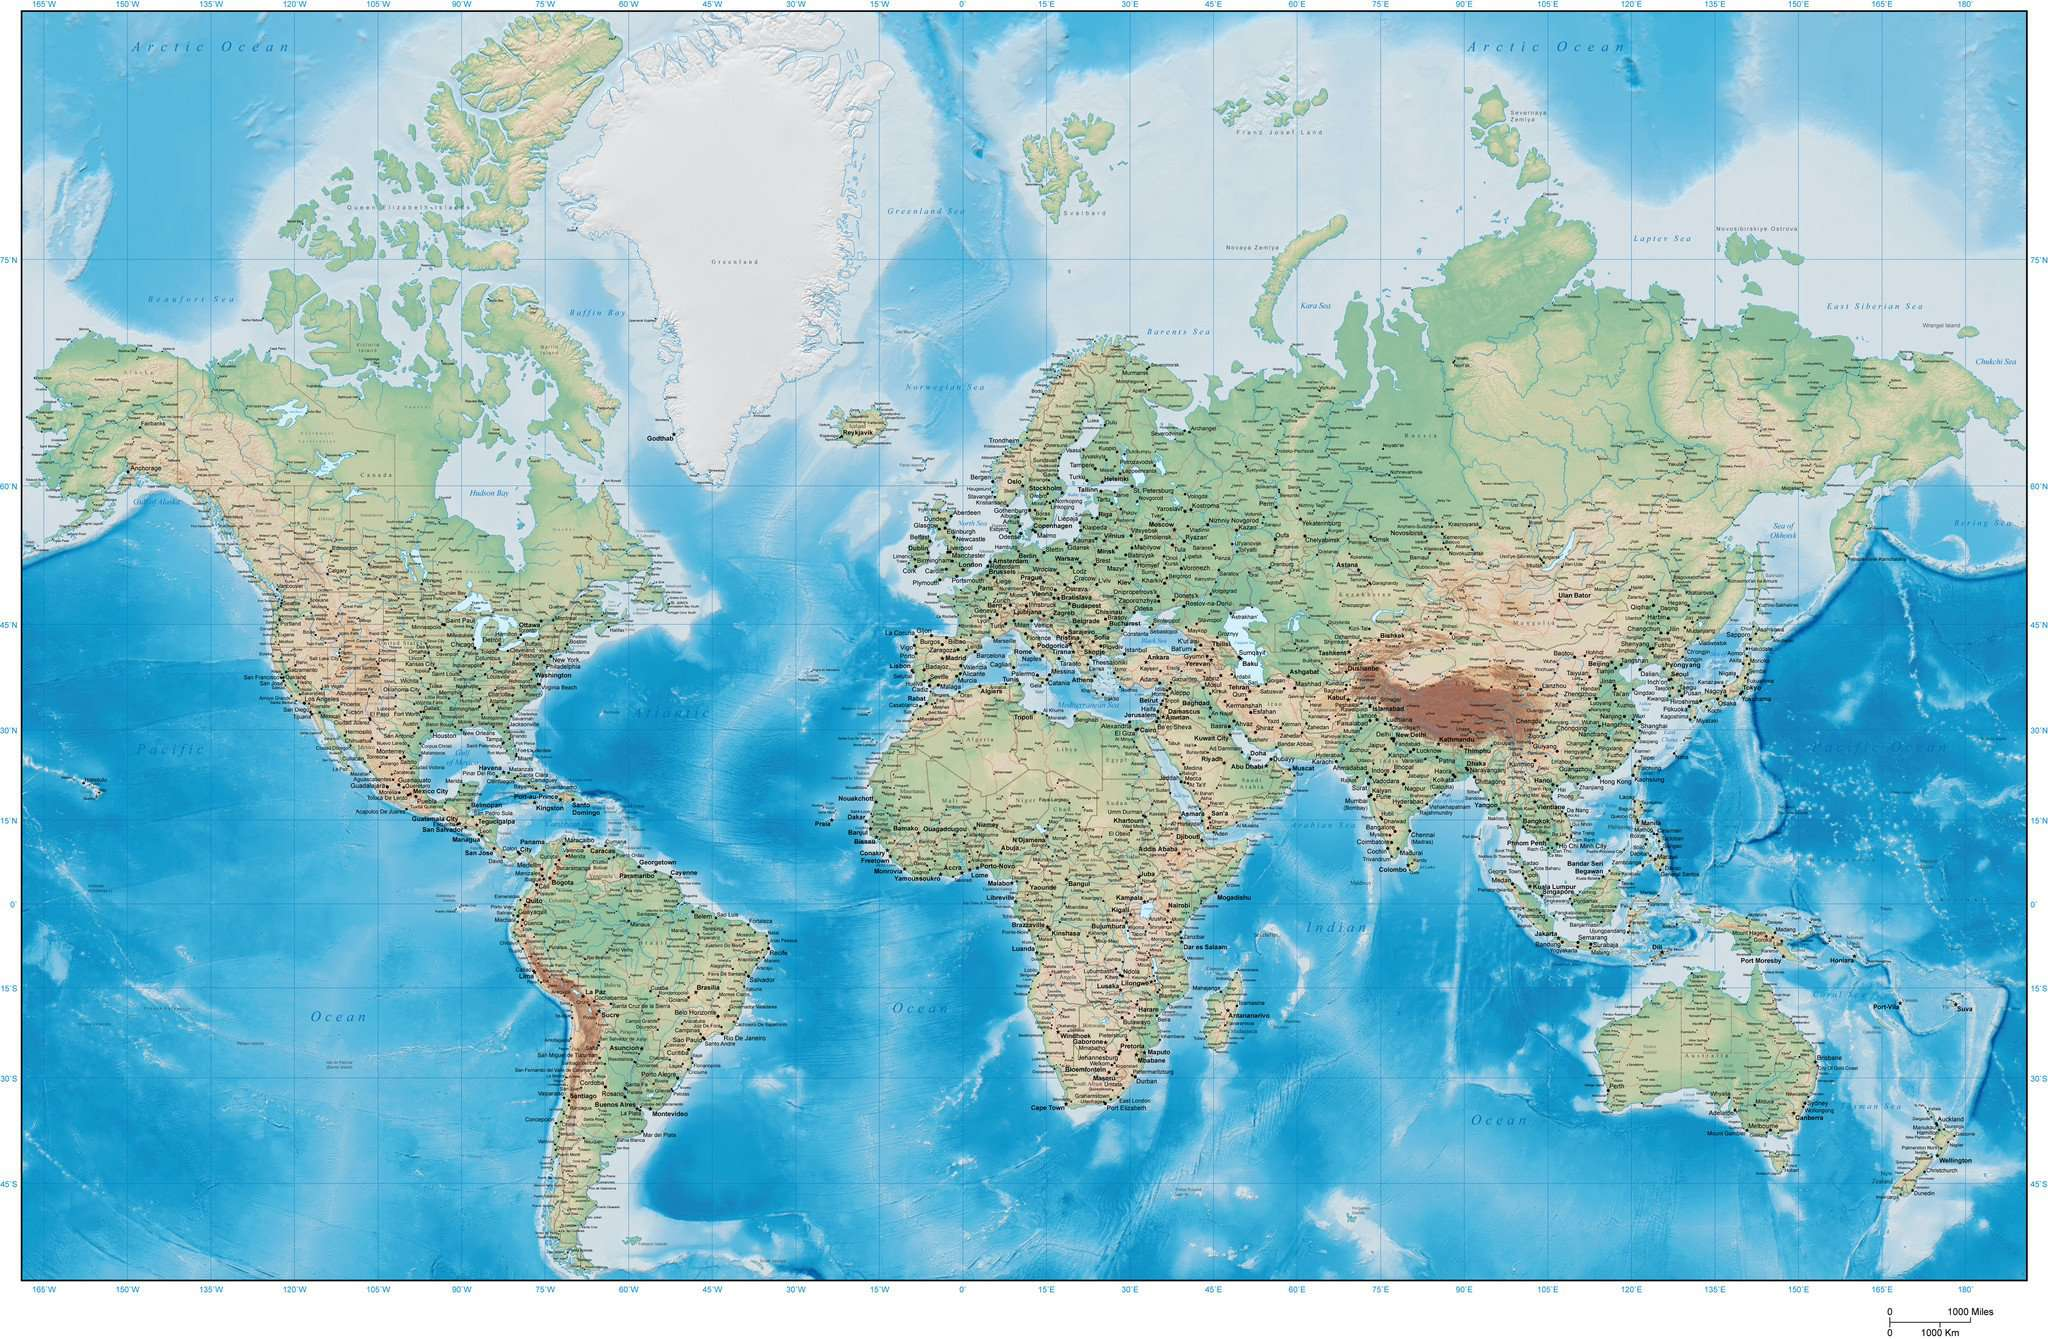 Digital Poster Size This World Map with Terrain in Adobe